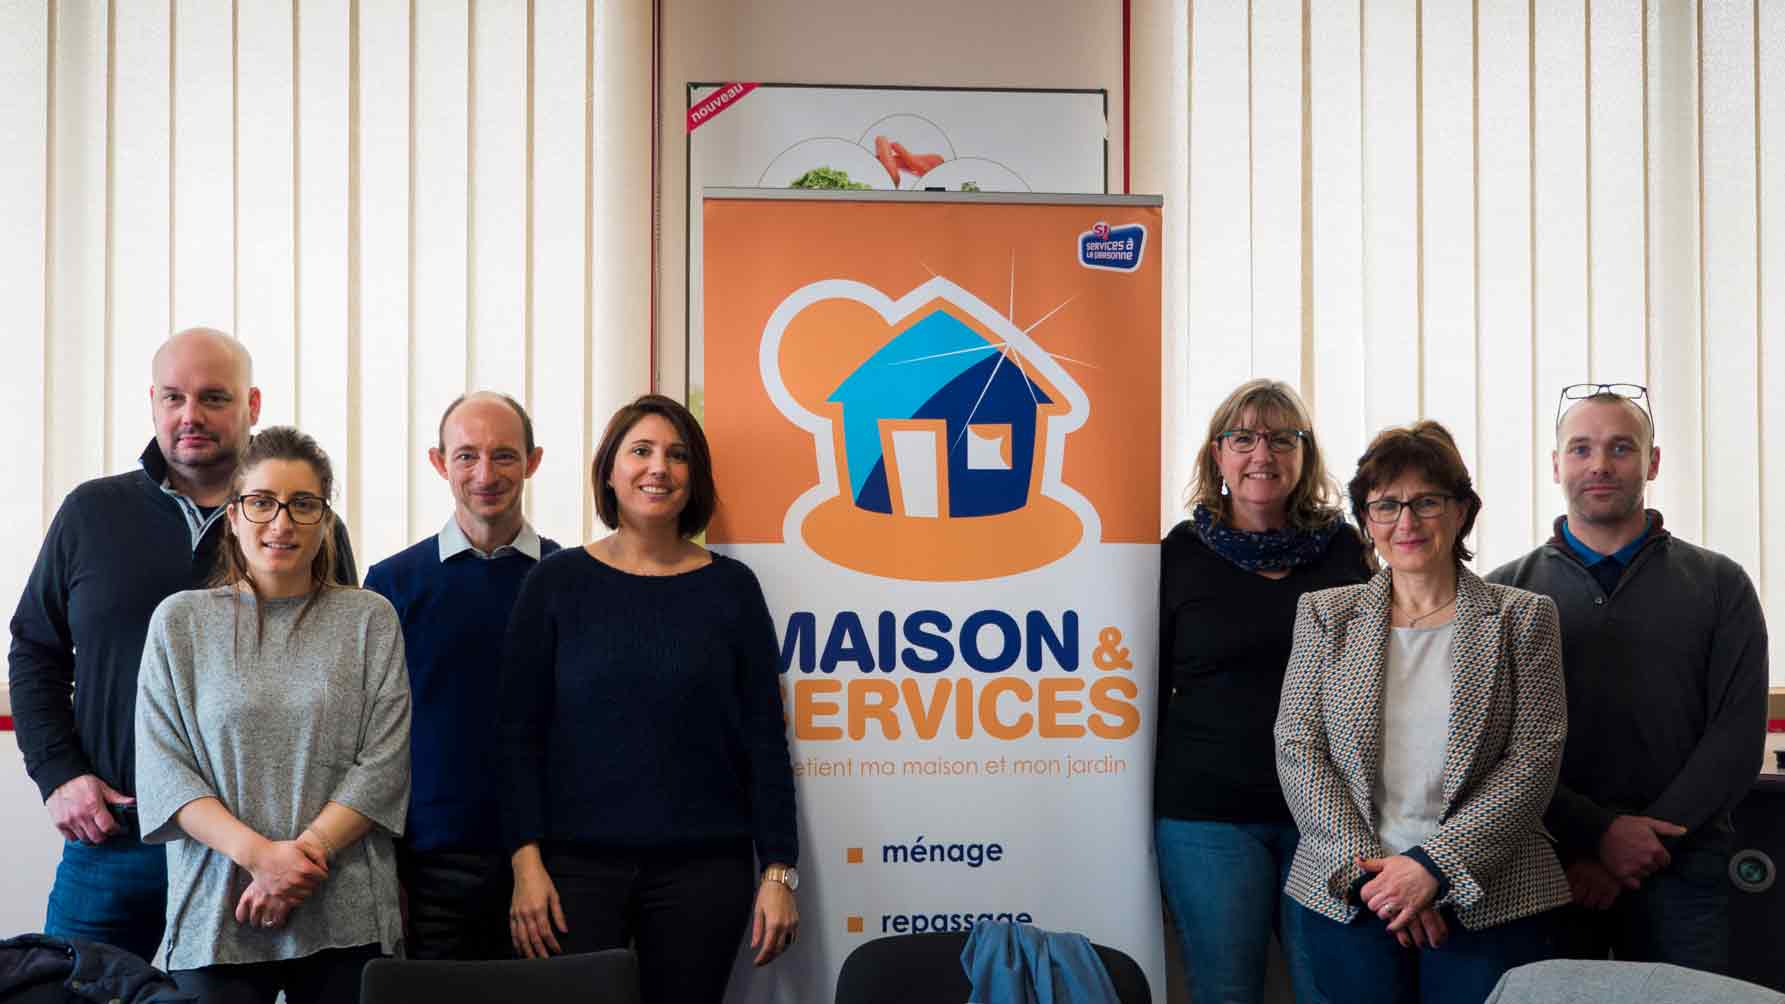 Maison & Services, formation